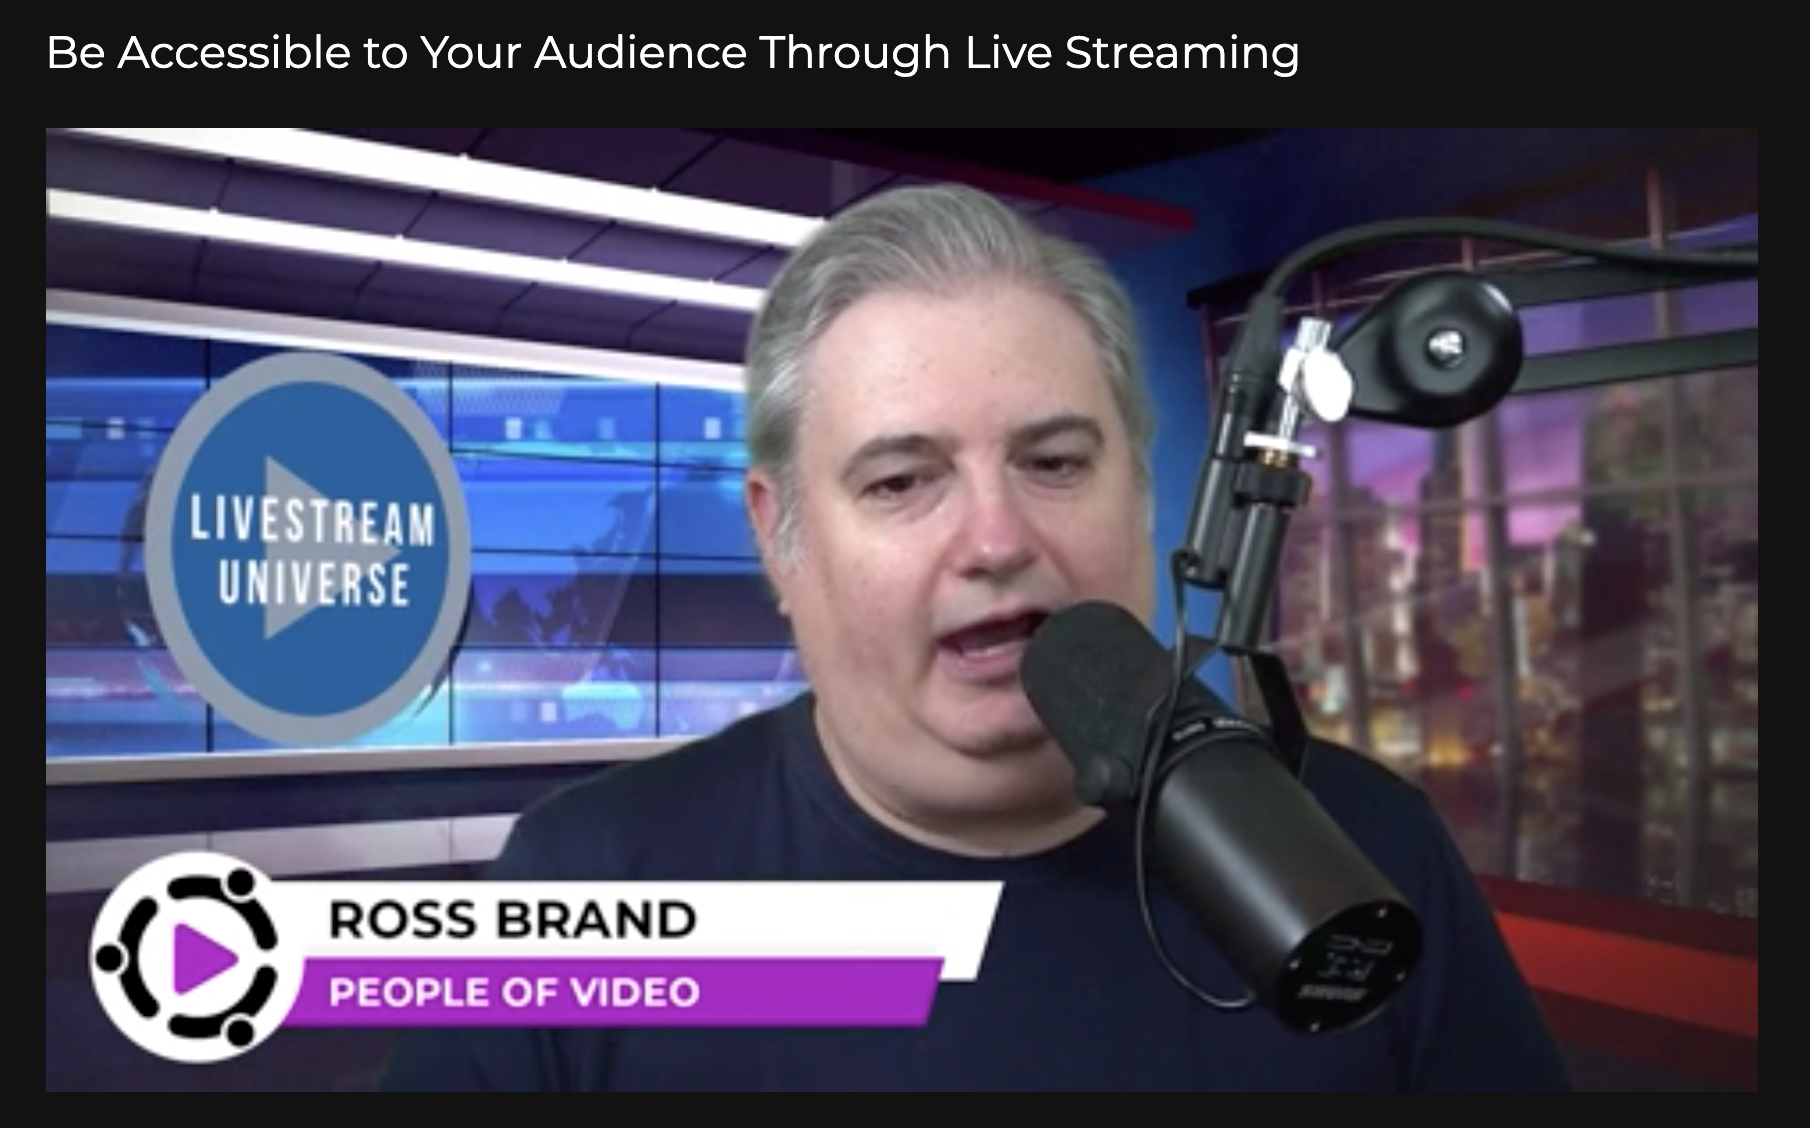 Ross Brand People of Video